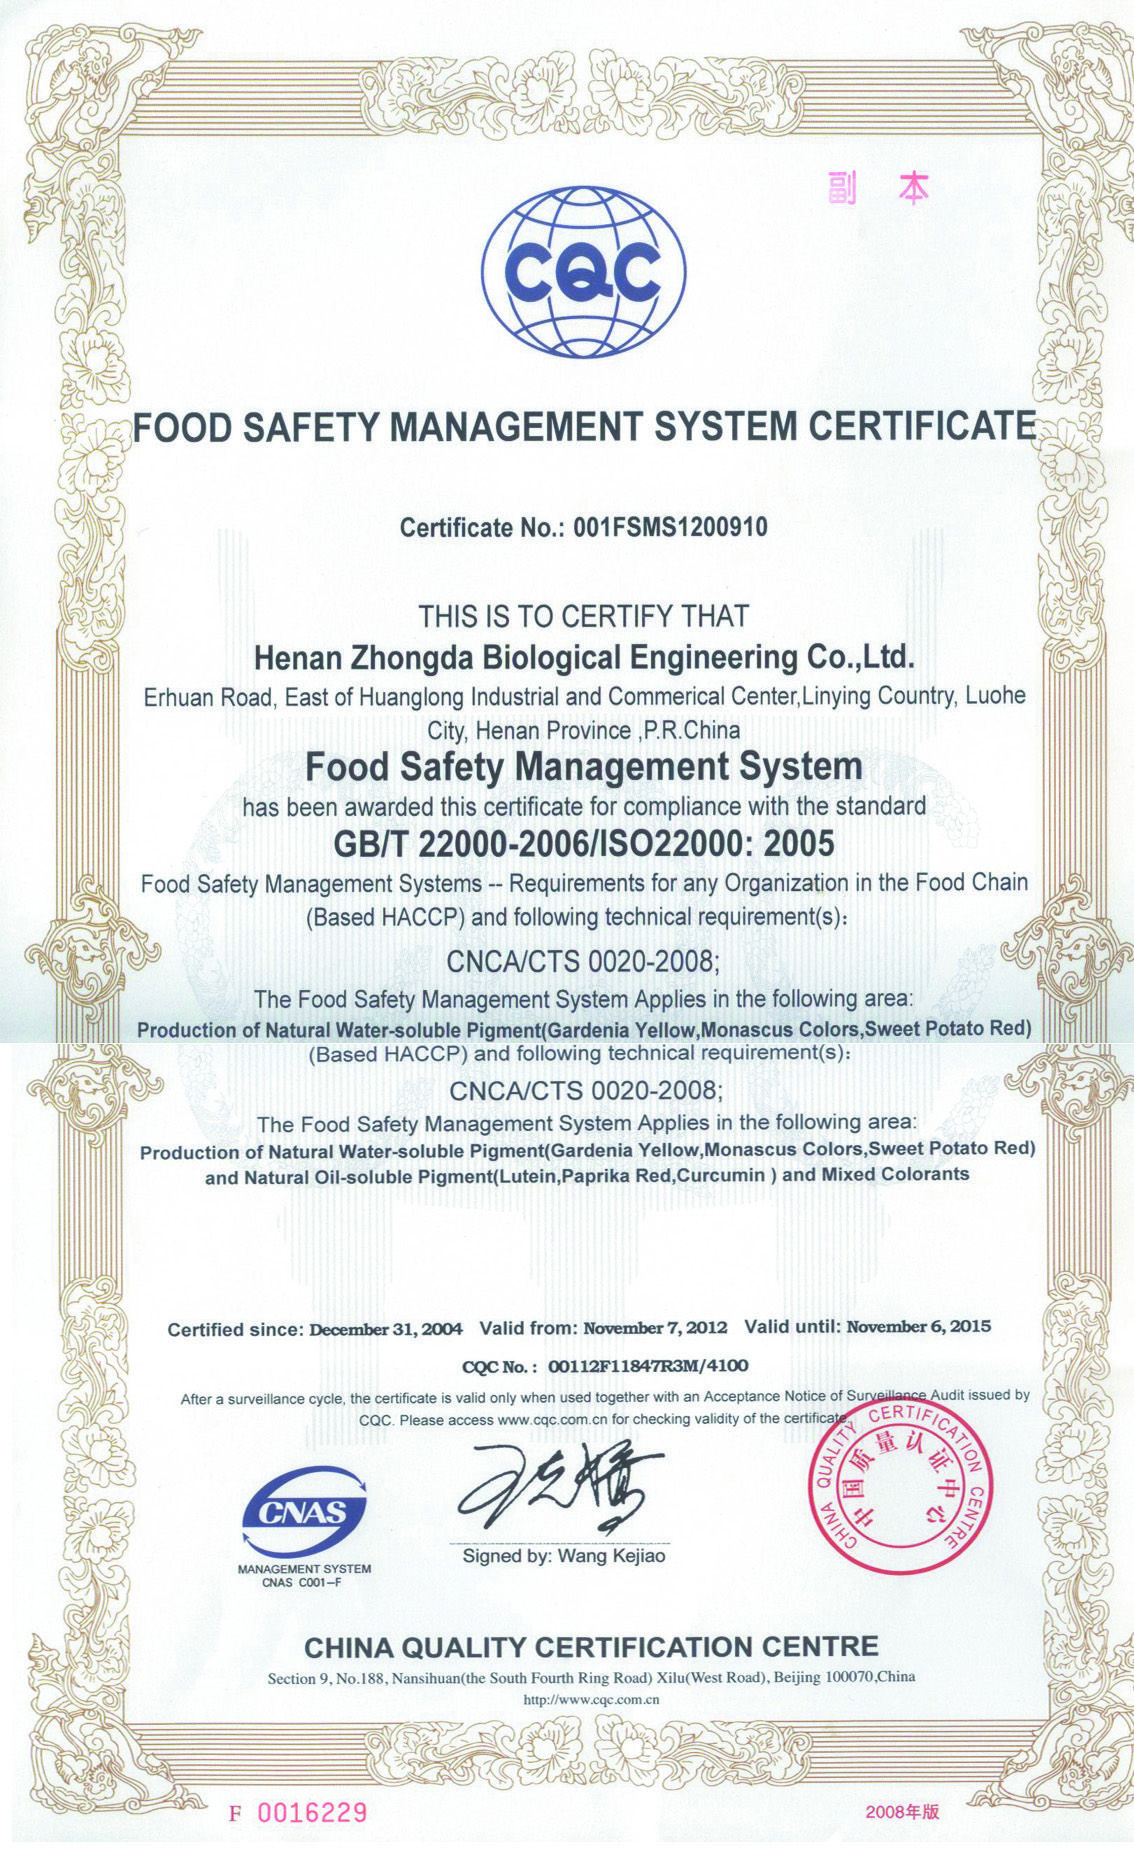 HACCP Certificate Safety management system, Certificate